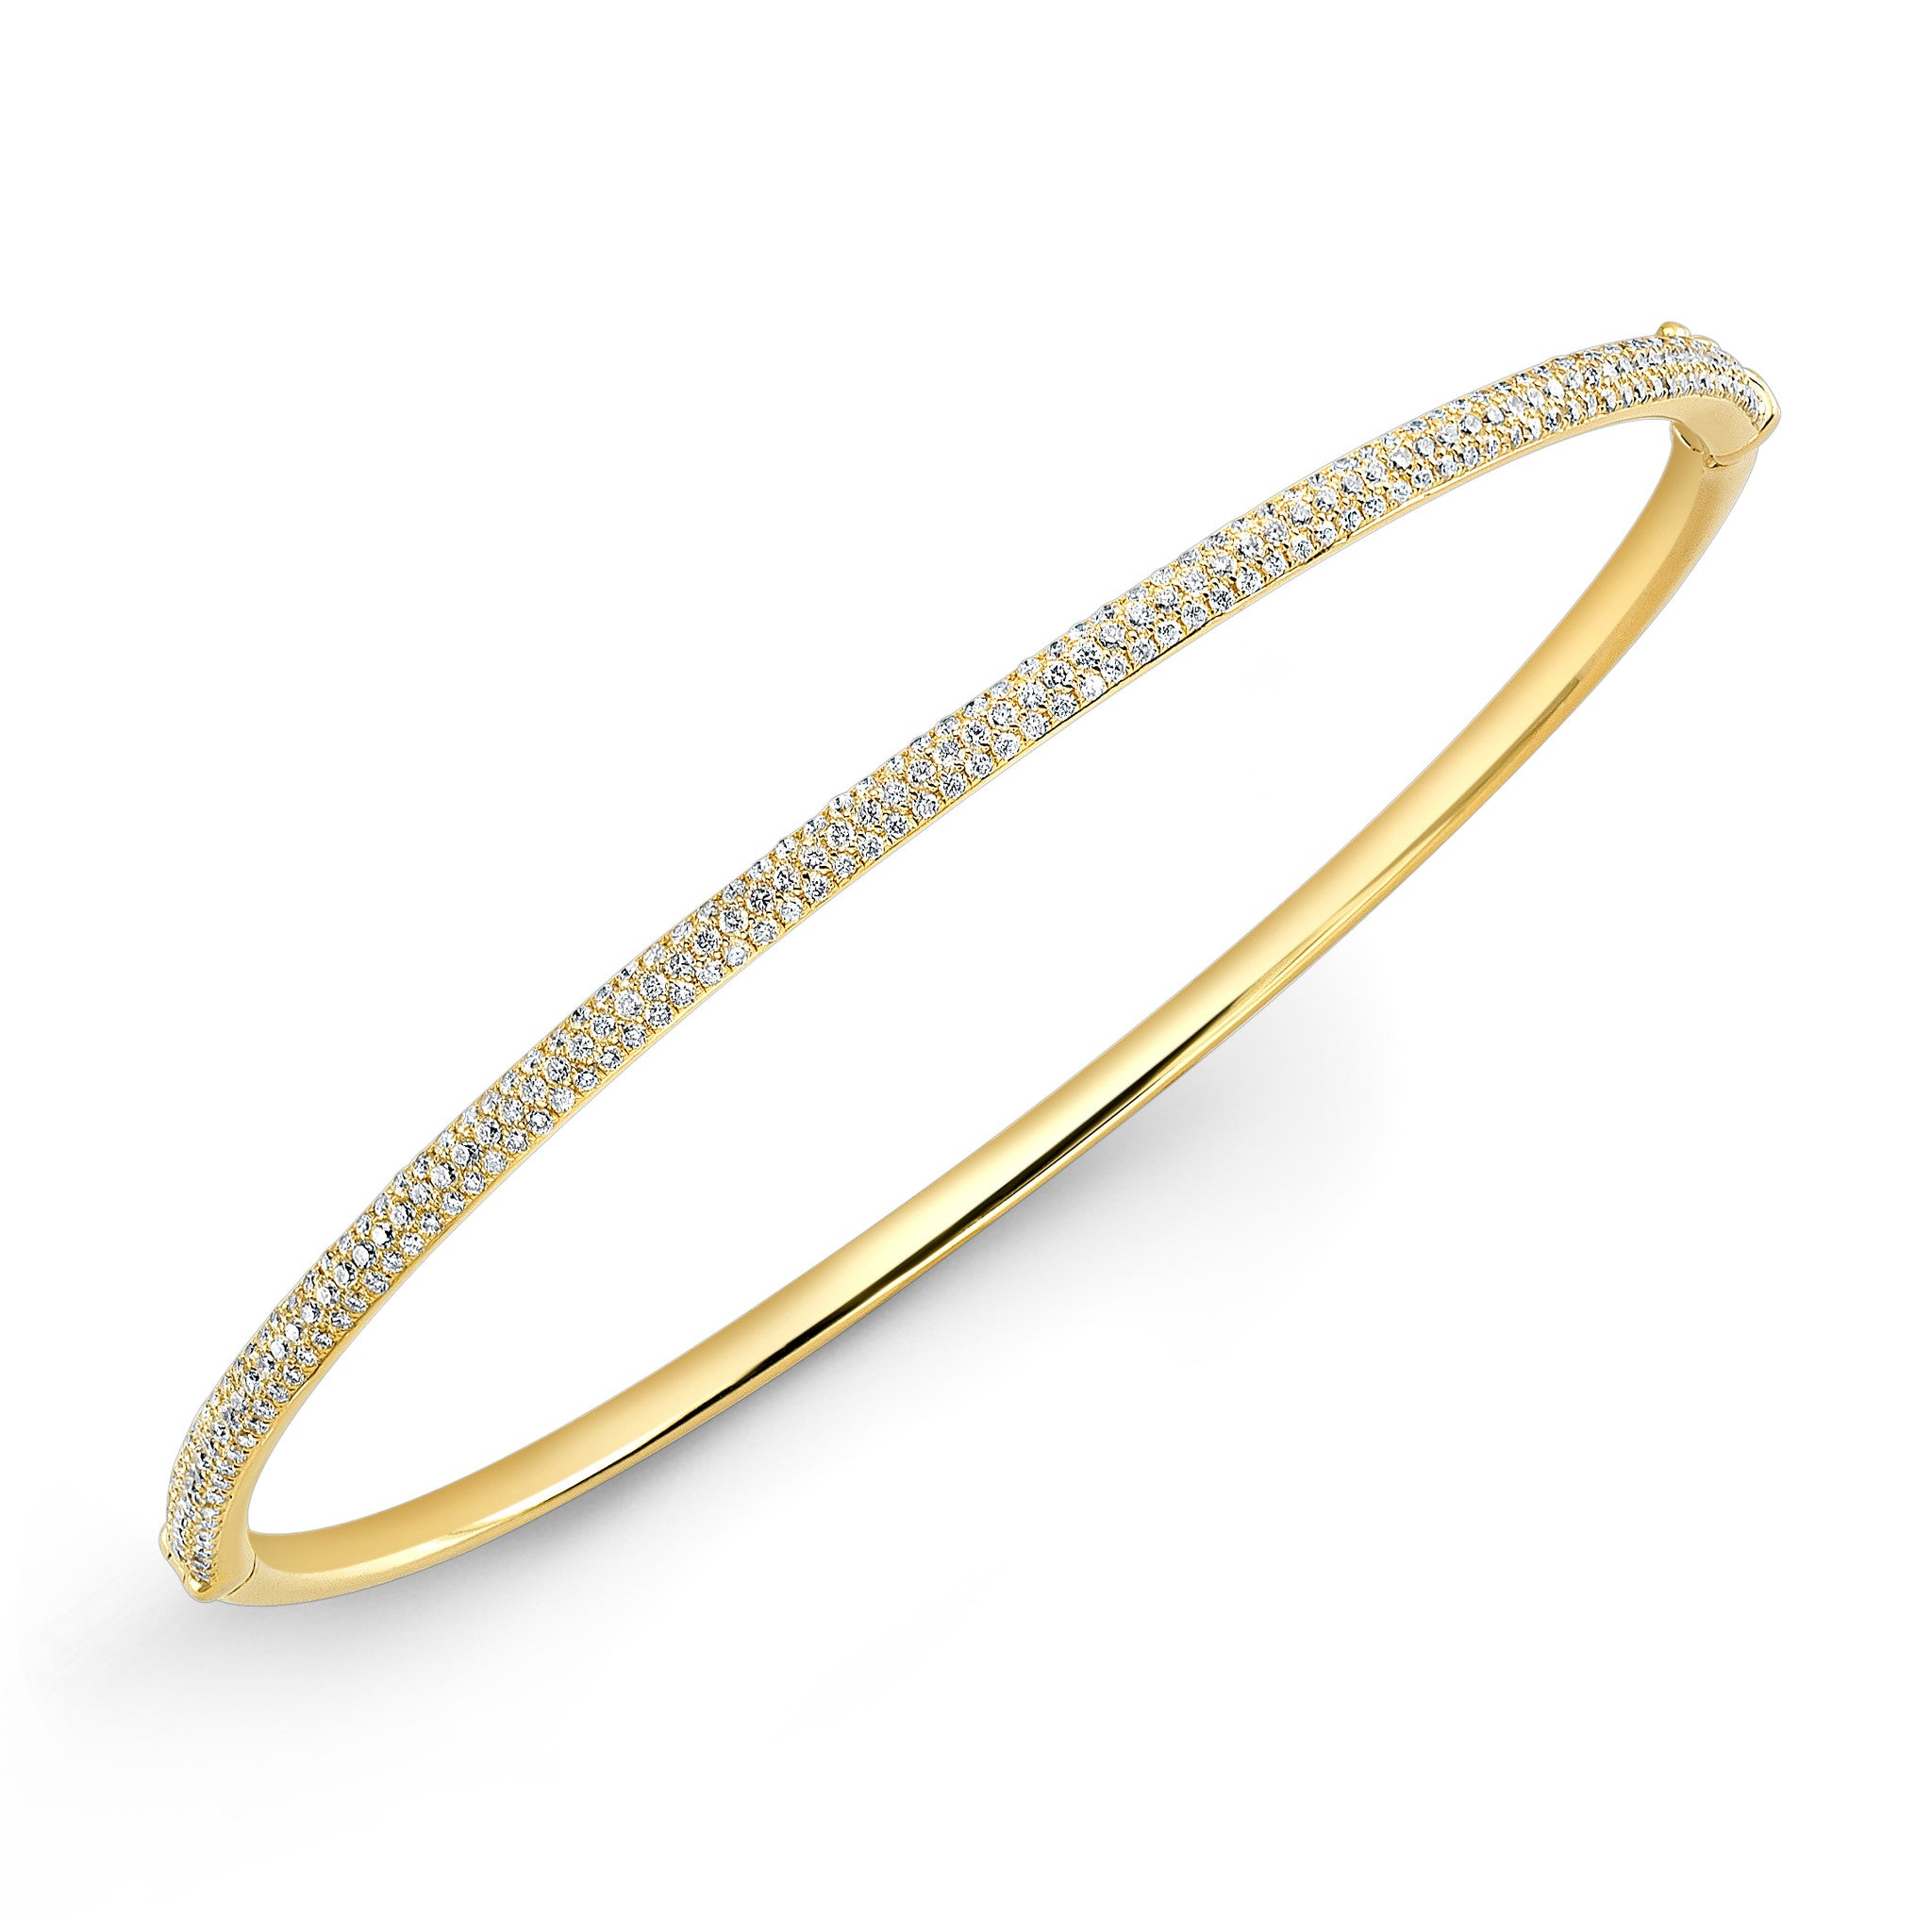 berry image lucia jewellery two gold s berrys from white scattered row diamond bangles bangle